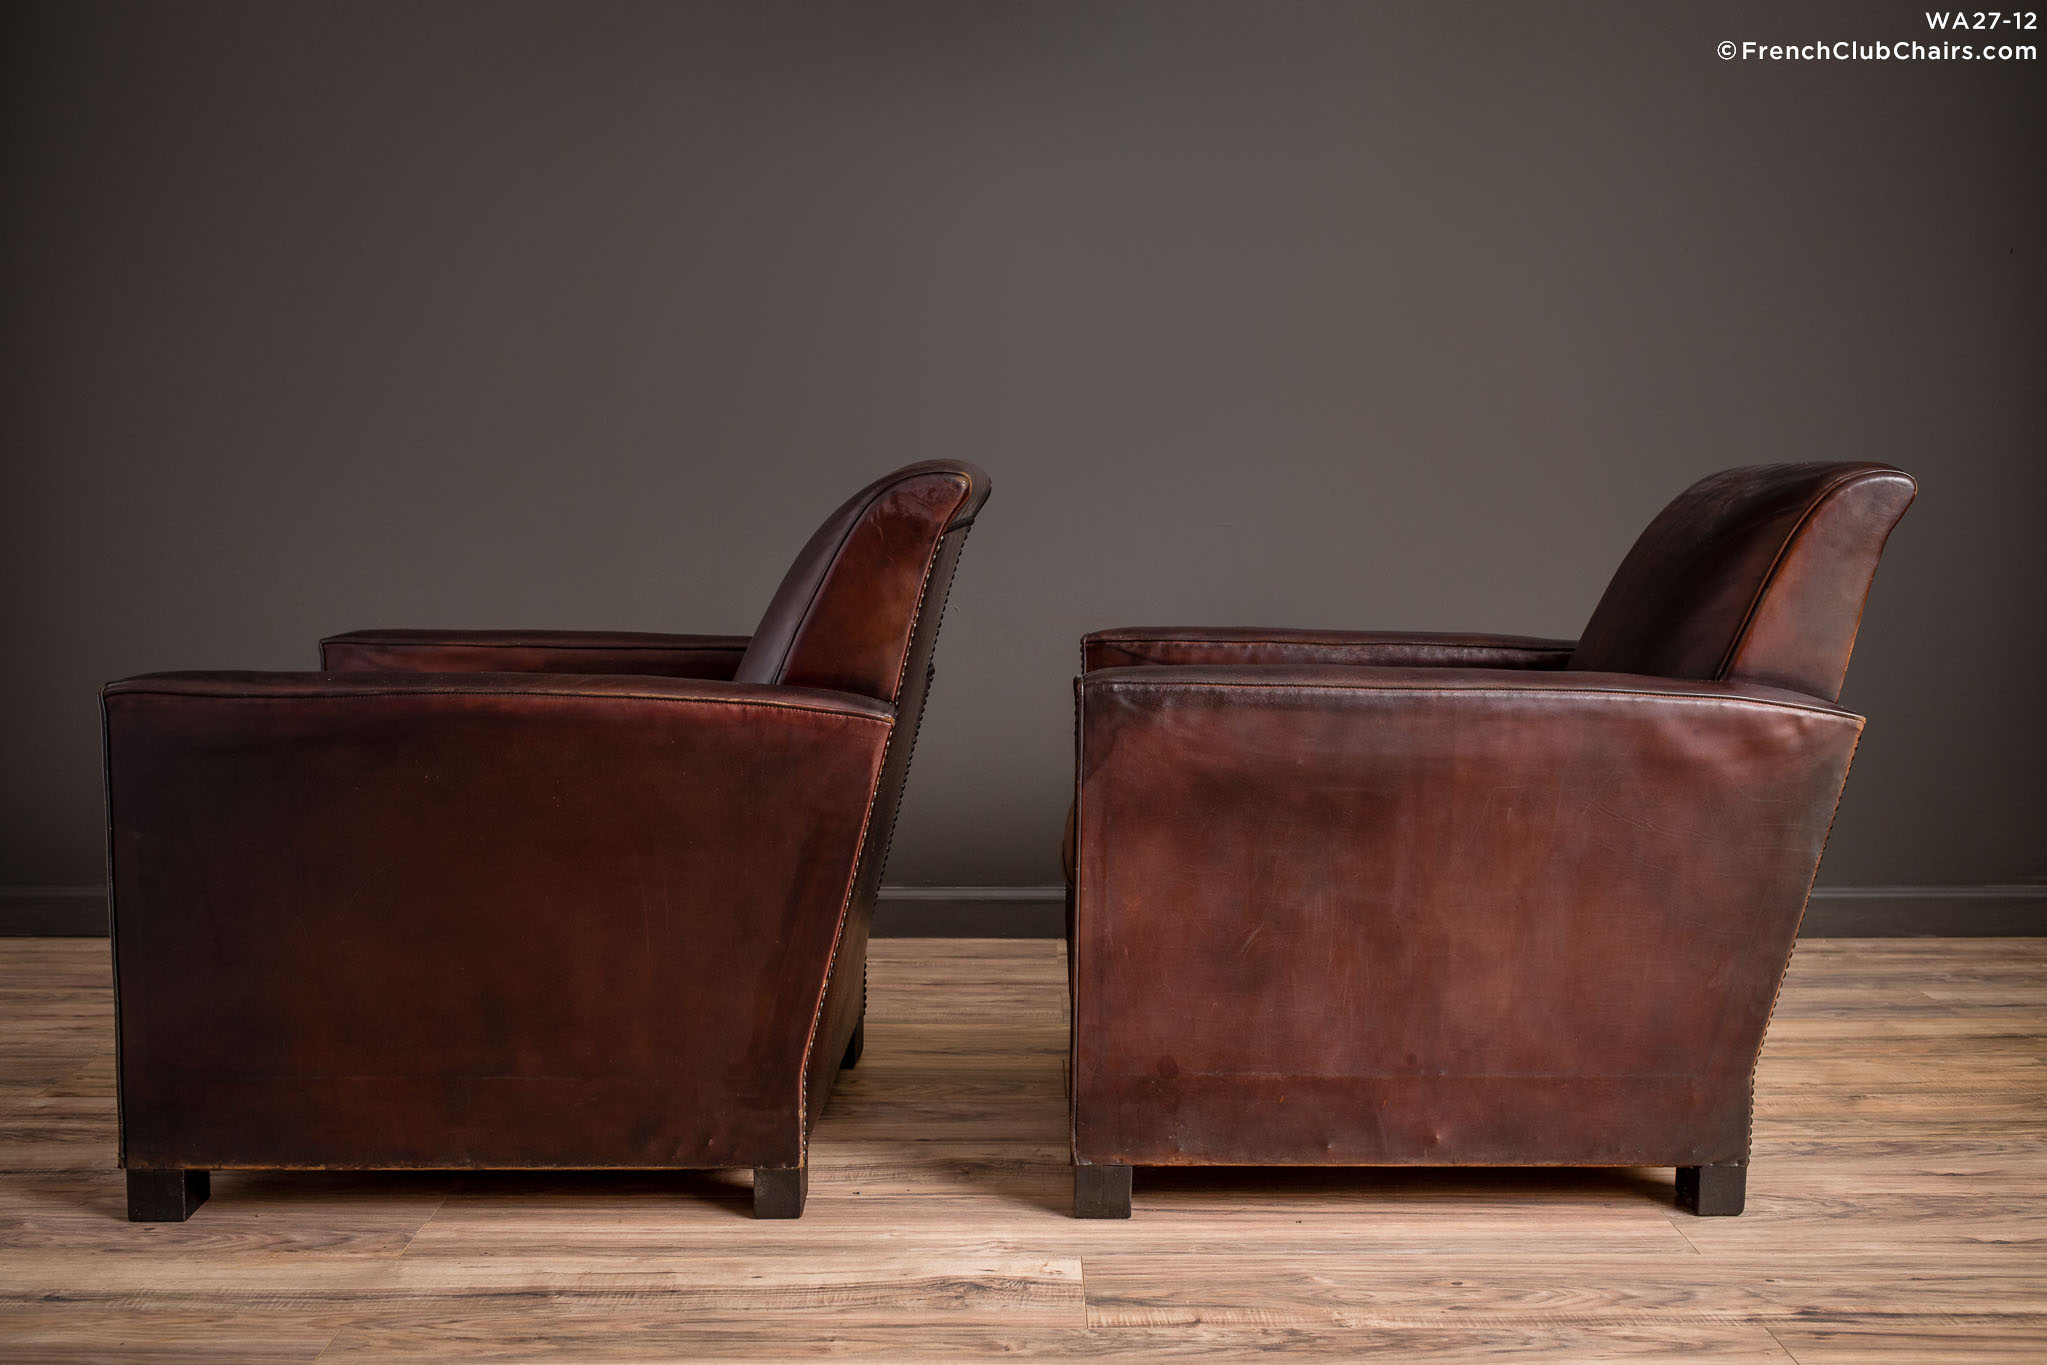 WA_27-12_St_Tropez_Dark_Lounge_Square_Pair_R_4LT-v01-williams-antiks-leather-french-club-chair-wa_fcccom